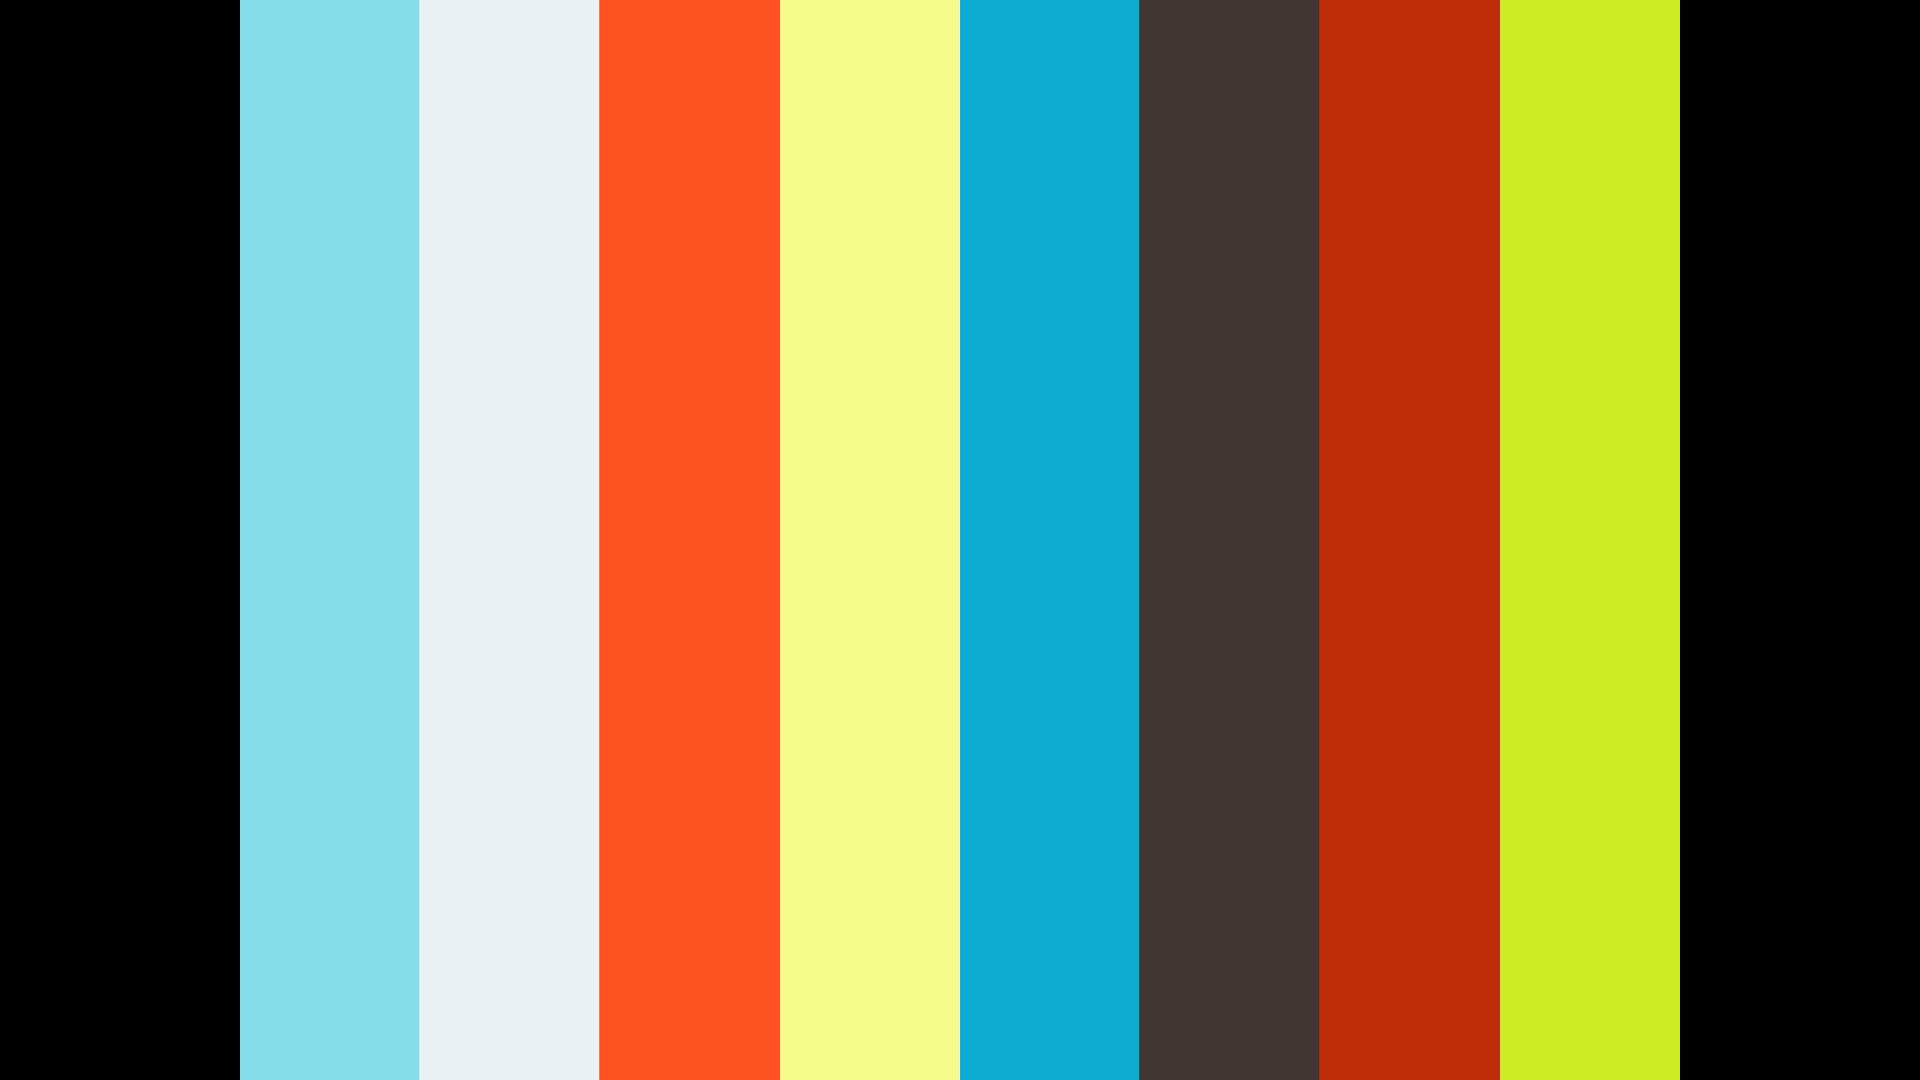 2019 KONA WORLDS (GARDA) - DAY 2